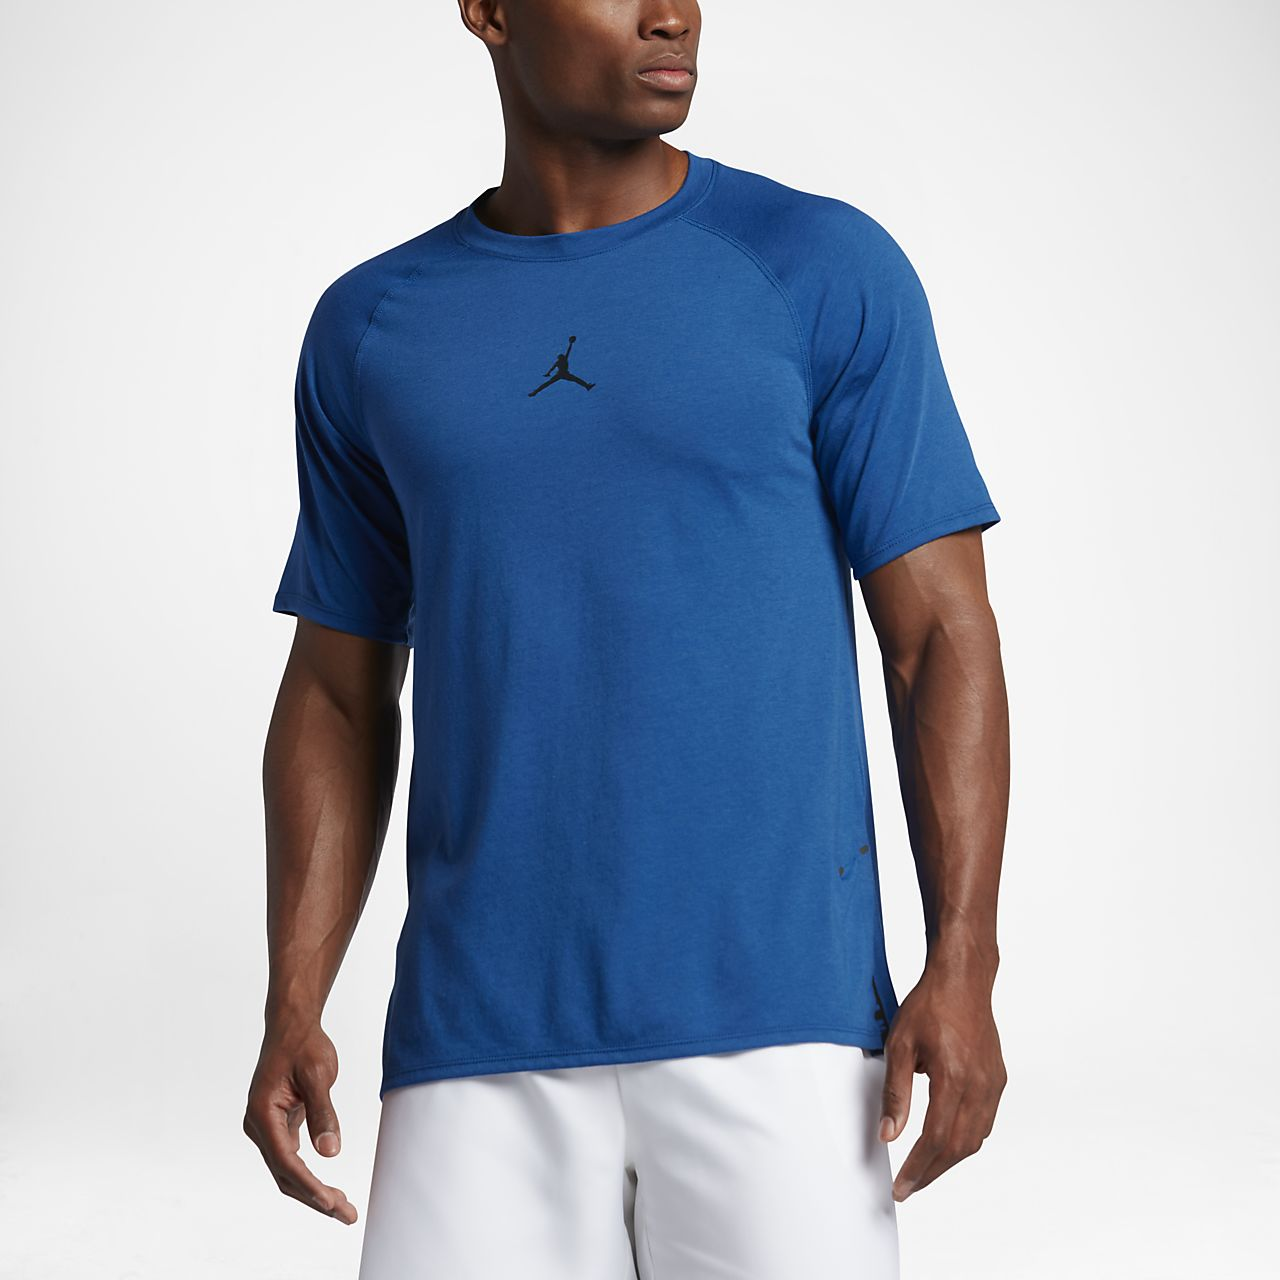 000d5ed0fbd9e1 Jordan 23 Tech SE Men s Short-Sleeve Training Top. Nike.com IN